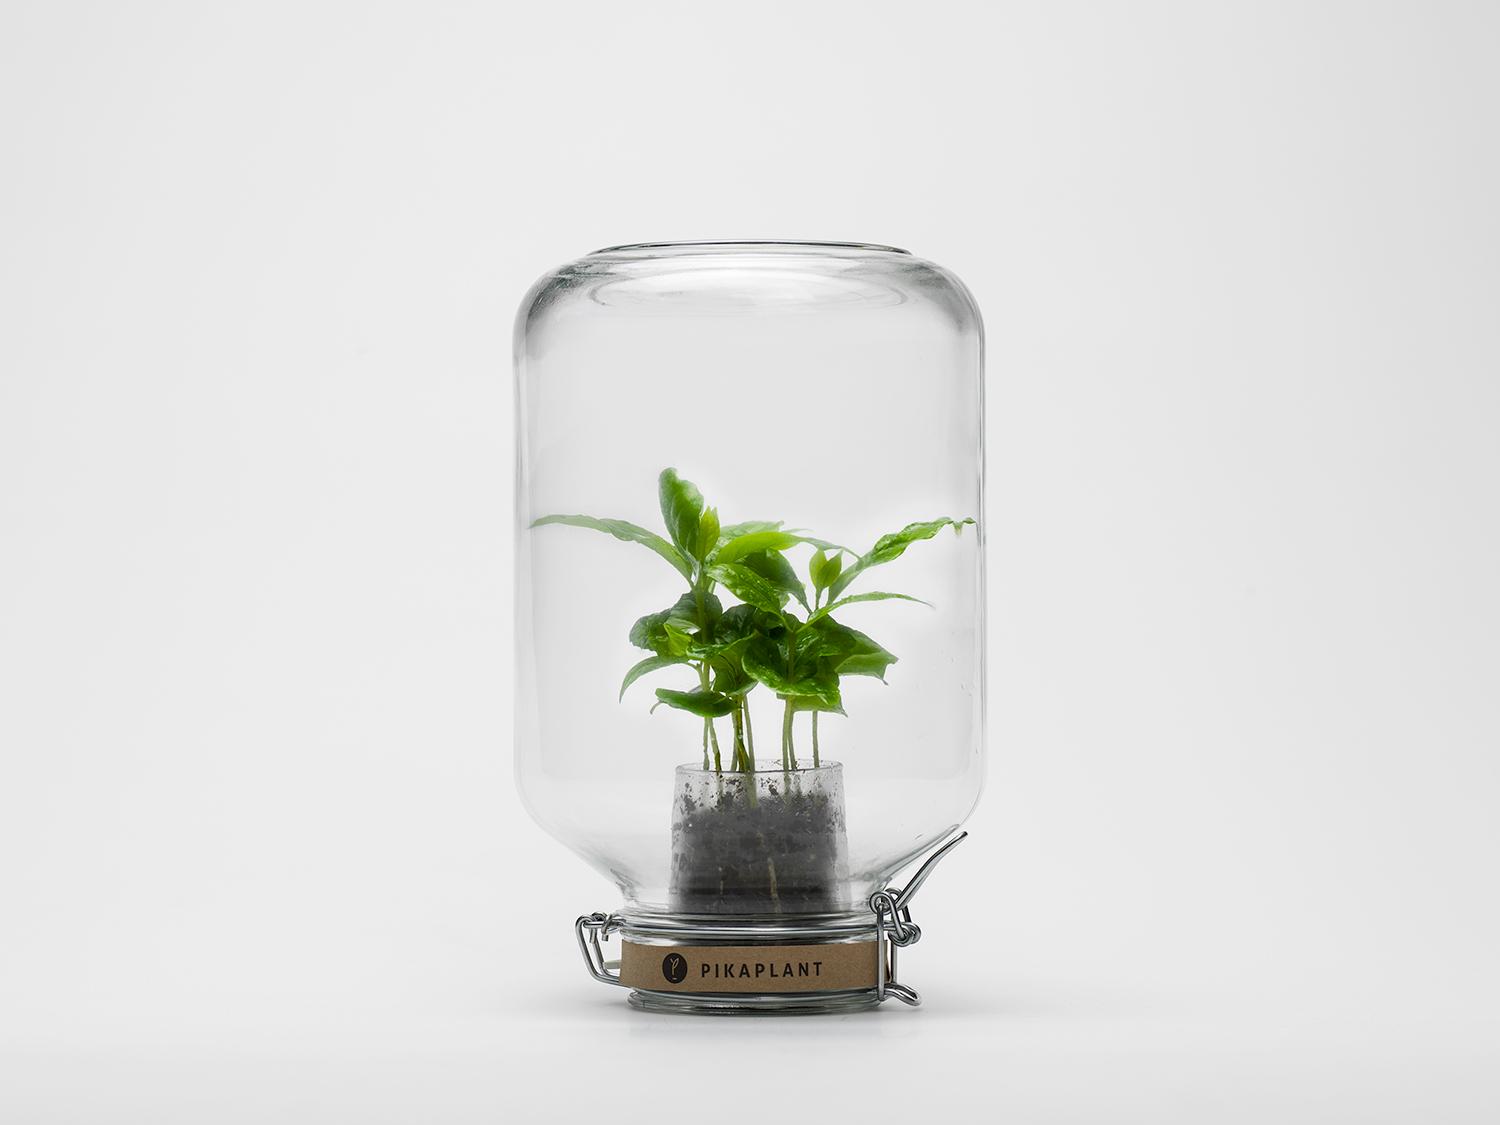 A glass jar which in it contains a green coffee plant